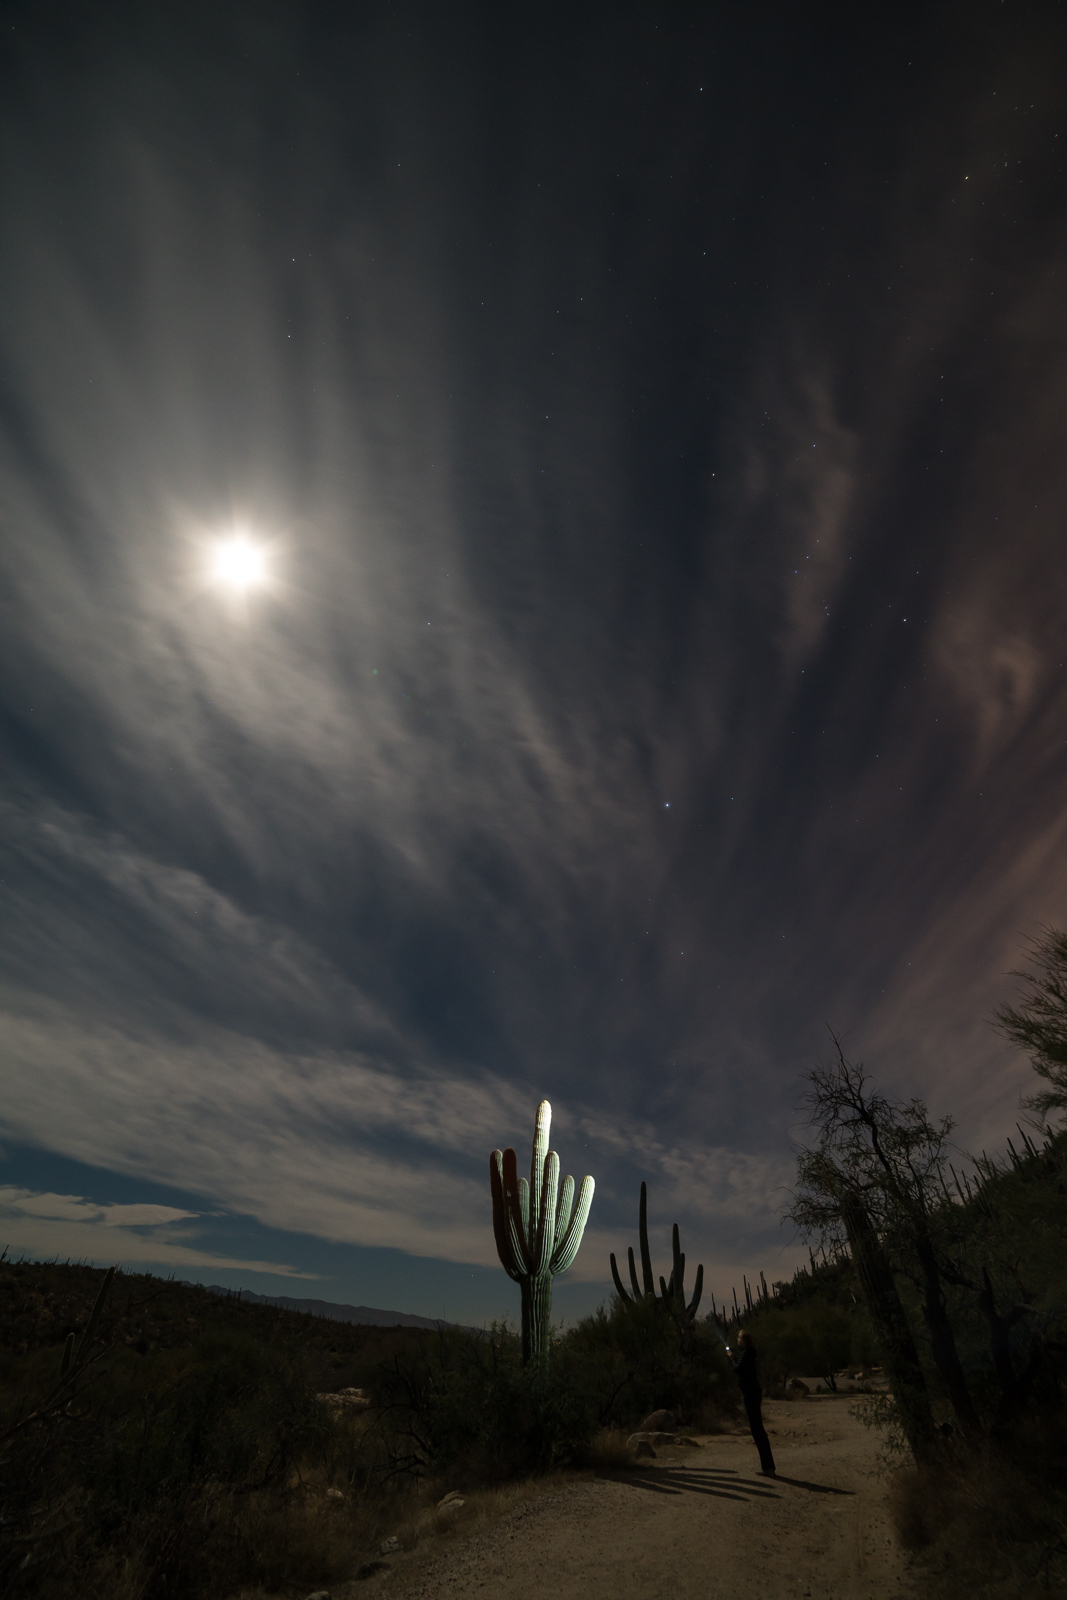 Moon, Saguaro in headlamp light - on the way back from the dam in Lower Sabino Canyon. January 2016.